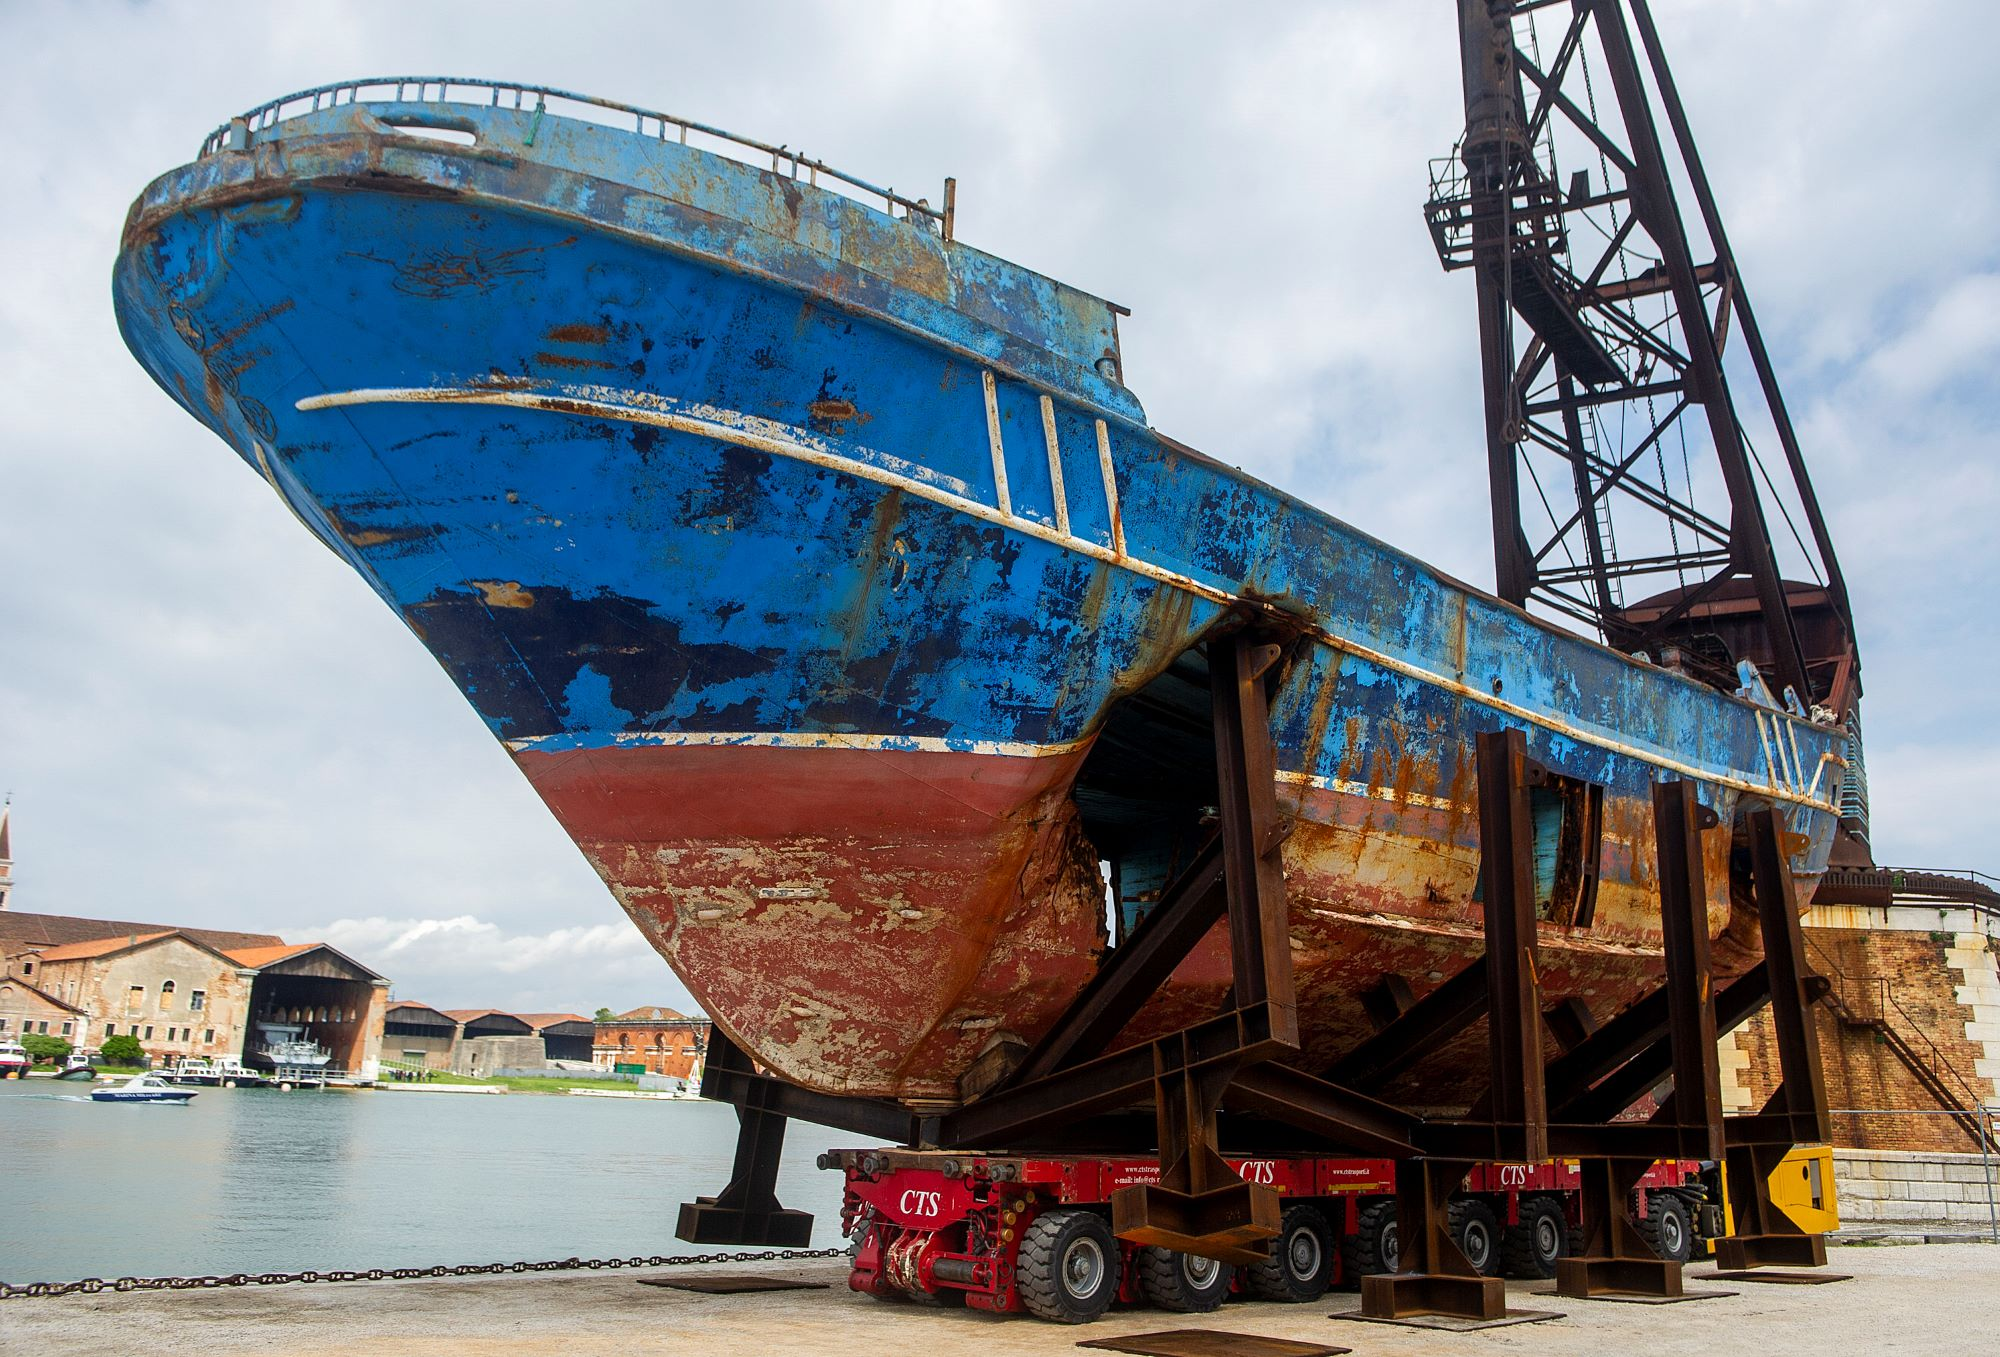 'Absolutely Vile' or 'Powerful'? Christoph Buchel's Migrant Boat Is the Most Divisive Work at the Venice Biennale